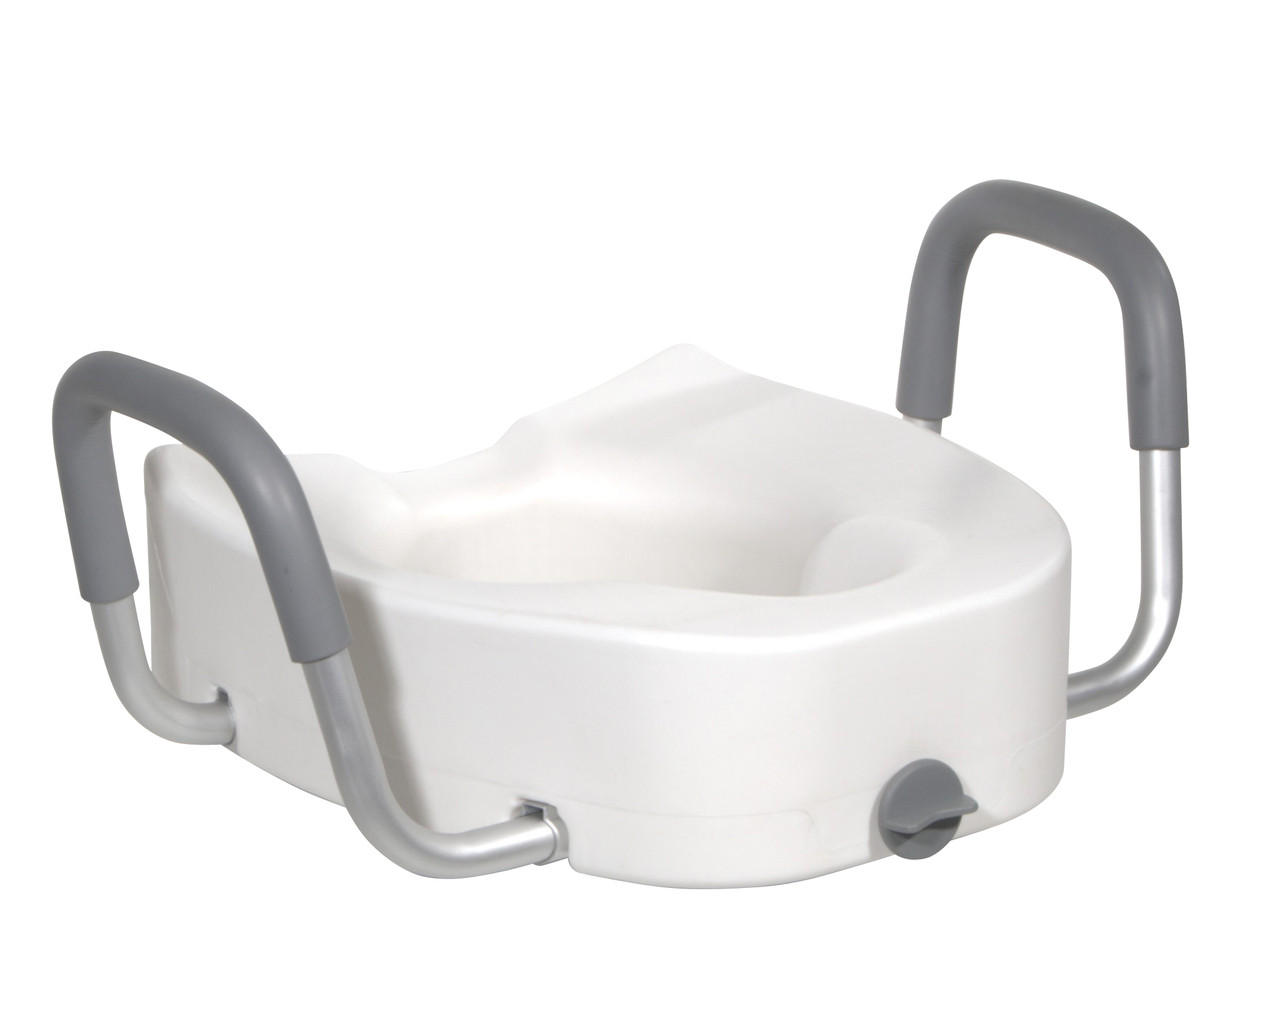 Raised Elongated Toilet Seat | Riser with Arm